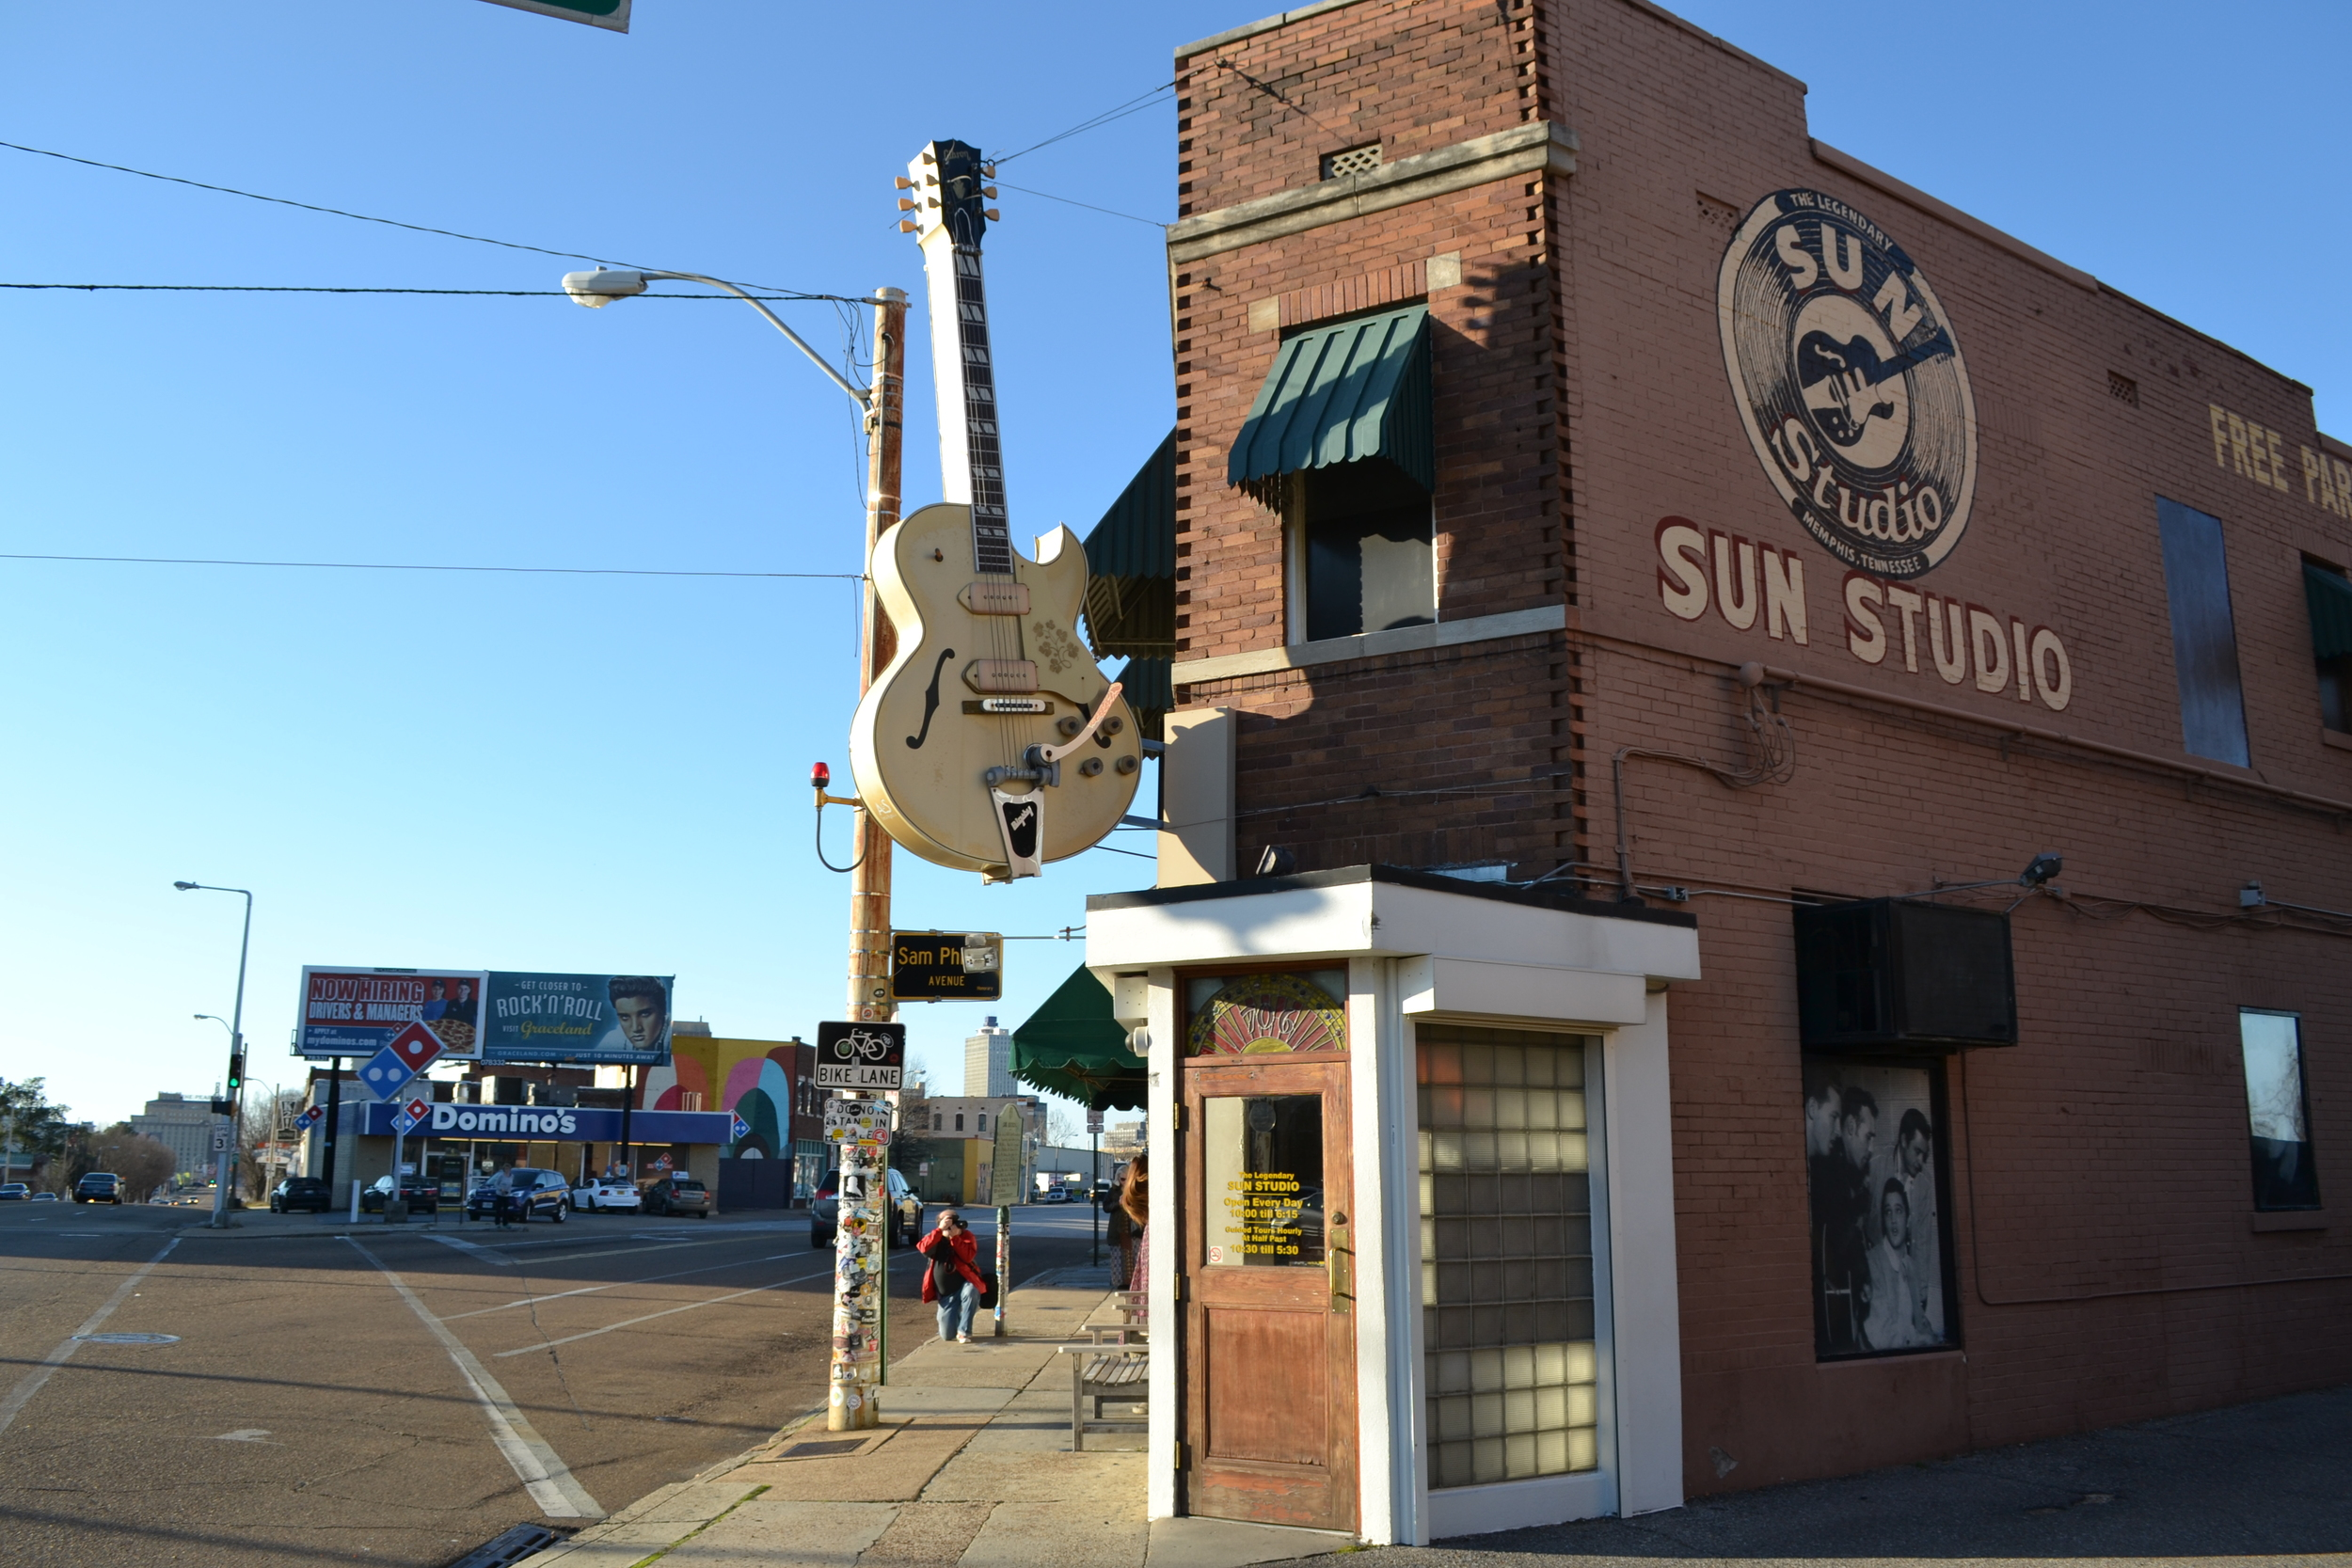 Sun Studio in Memphis, TN. The birthplace of Rock N' Roll.